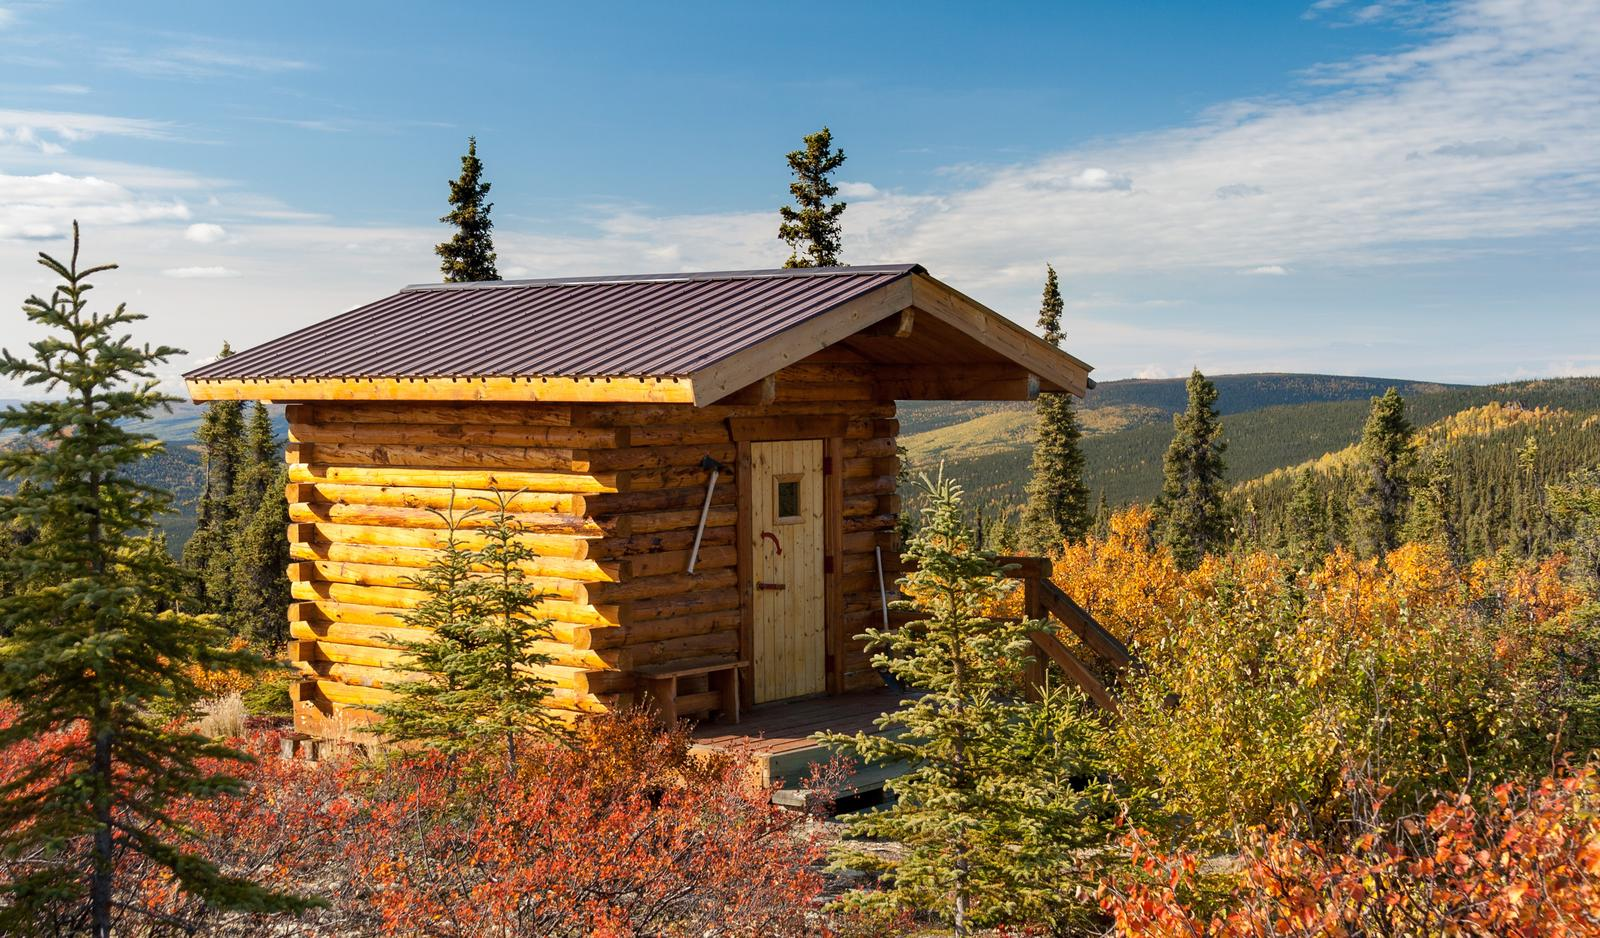 A small cabin sits on a ridge surrounded by fall foliageSummit Trail Shelter on a sunny fall day